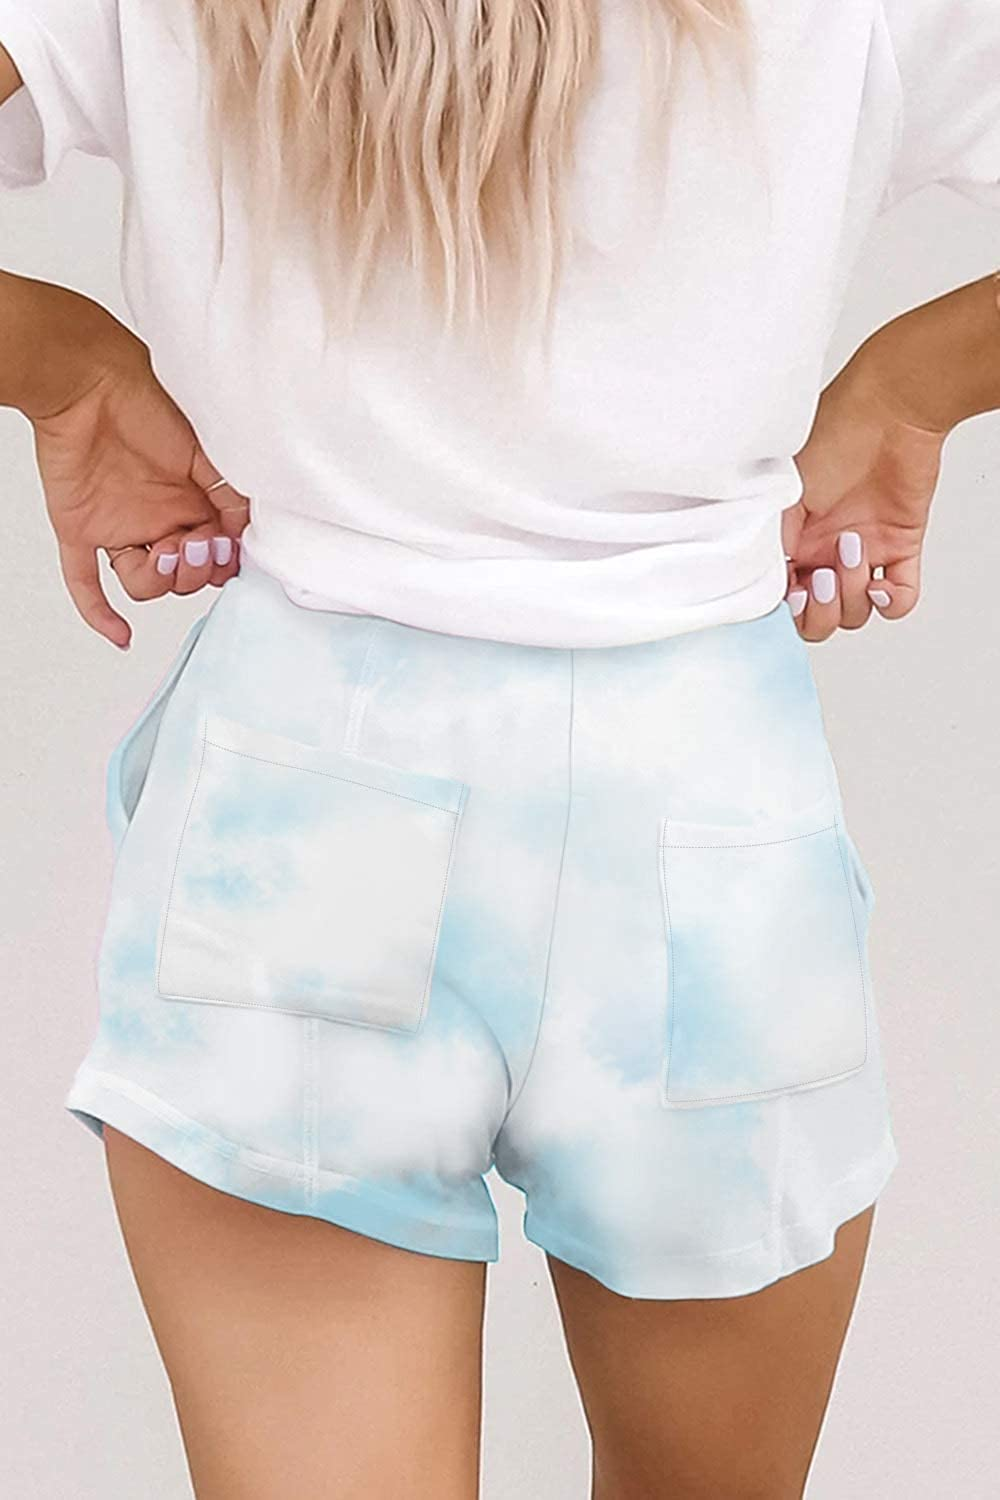 Cutiefox Womens Tie Dye Printed Drawstring Shorts Elastic Waist Shorts Casual Pants with Pockets